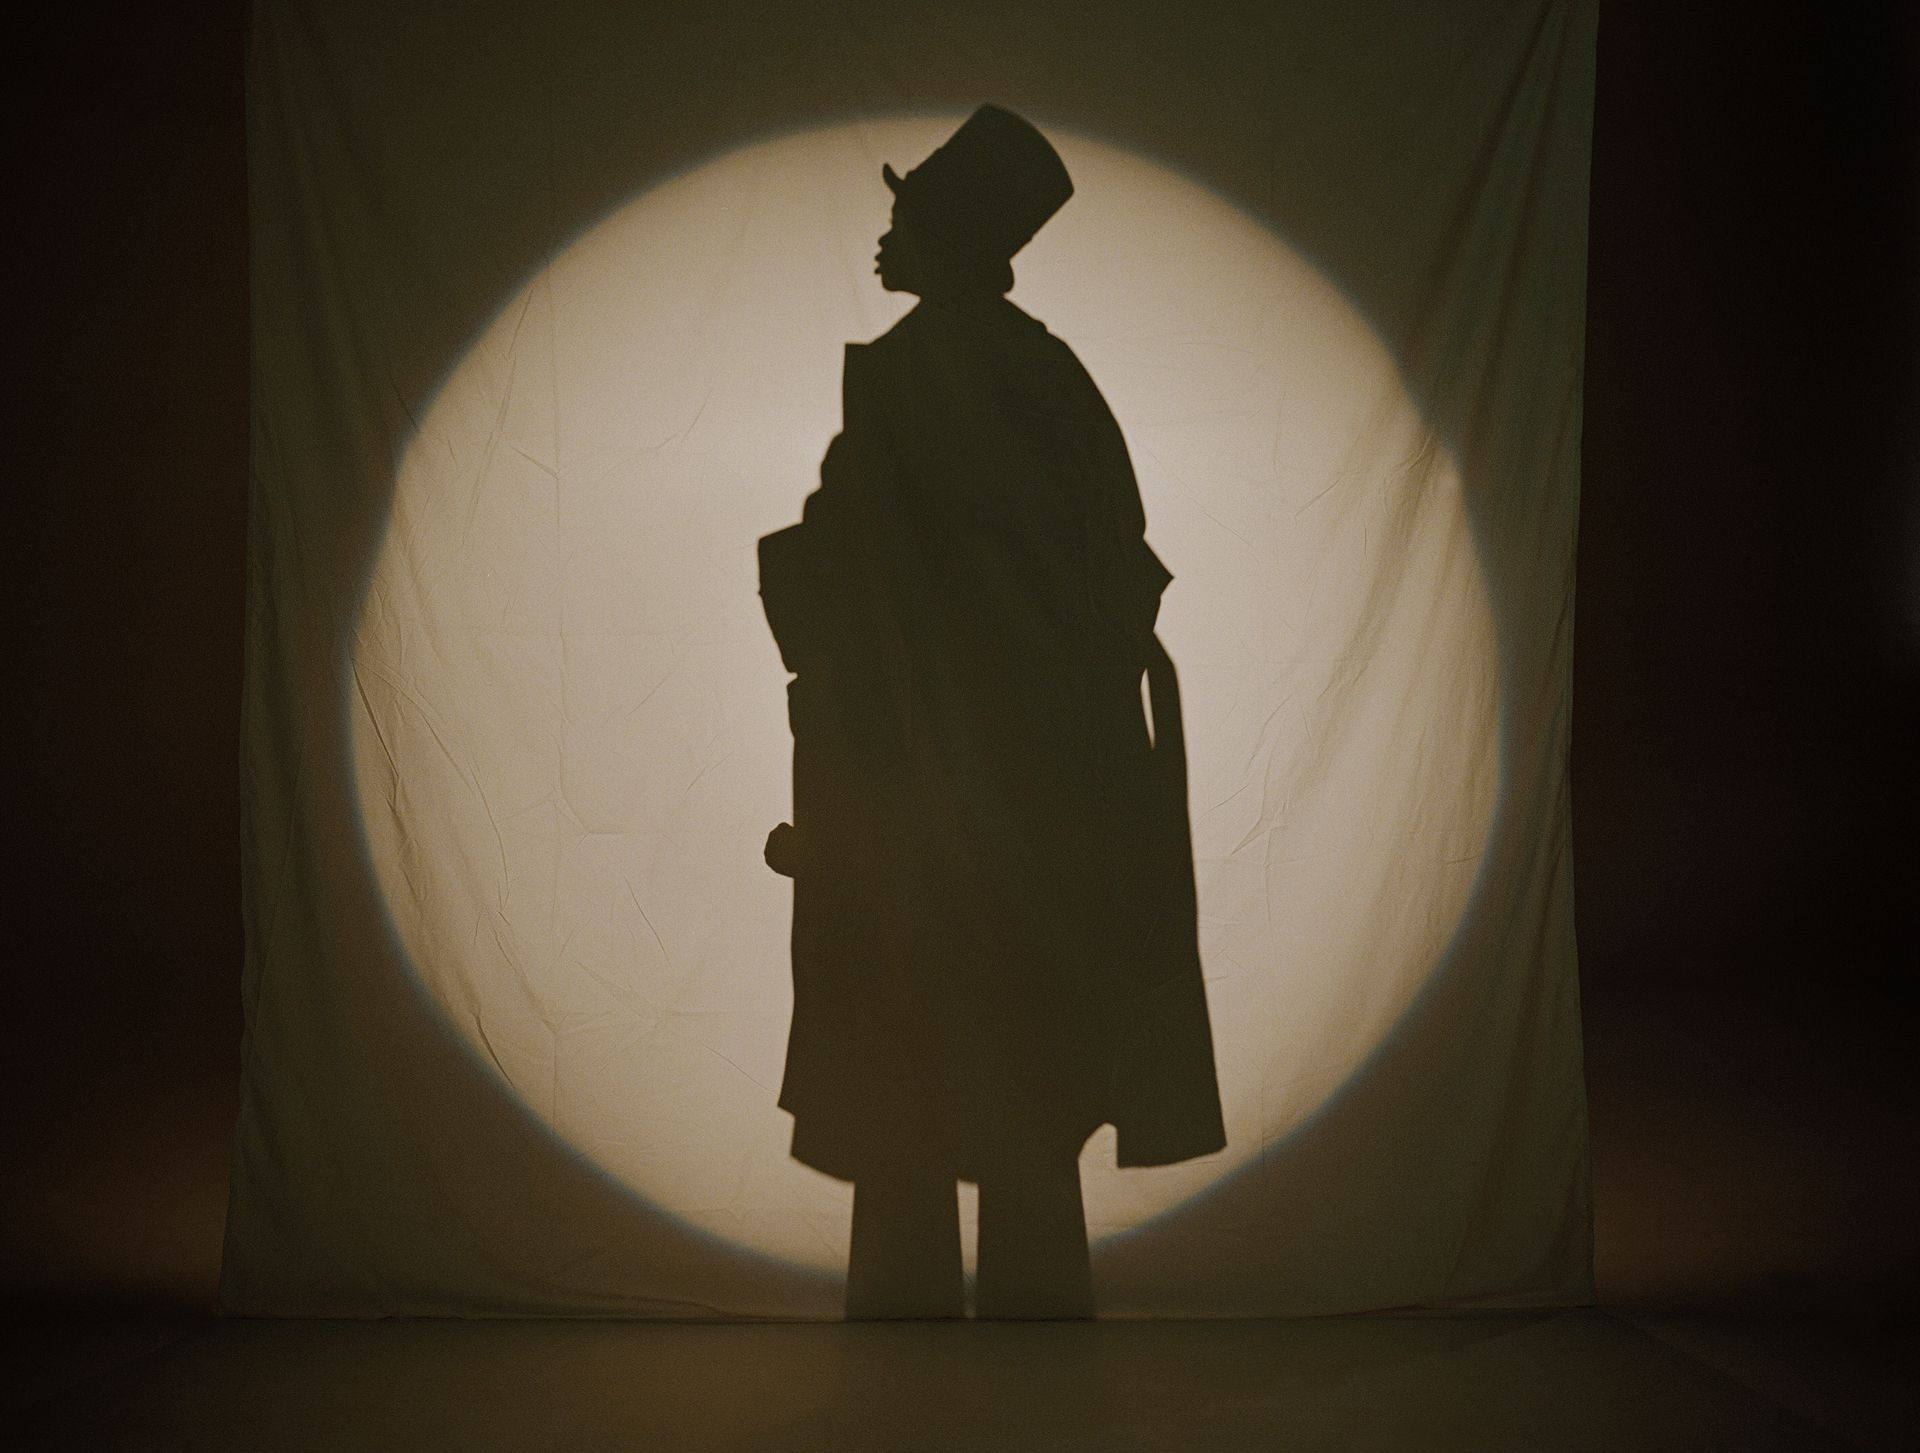 Little boy pretending he is a tall adult in a trench coat in a shadow show. We only see his shadow in a round circle of light.